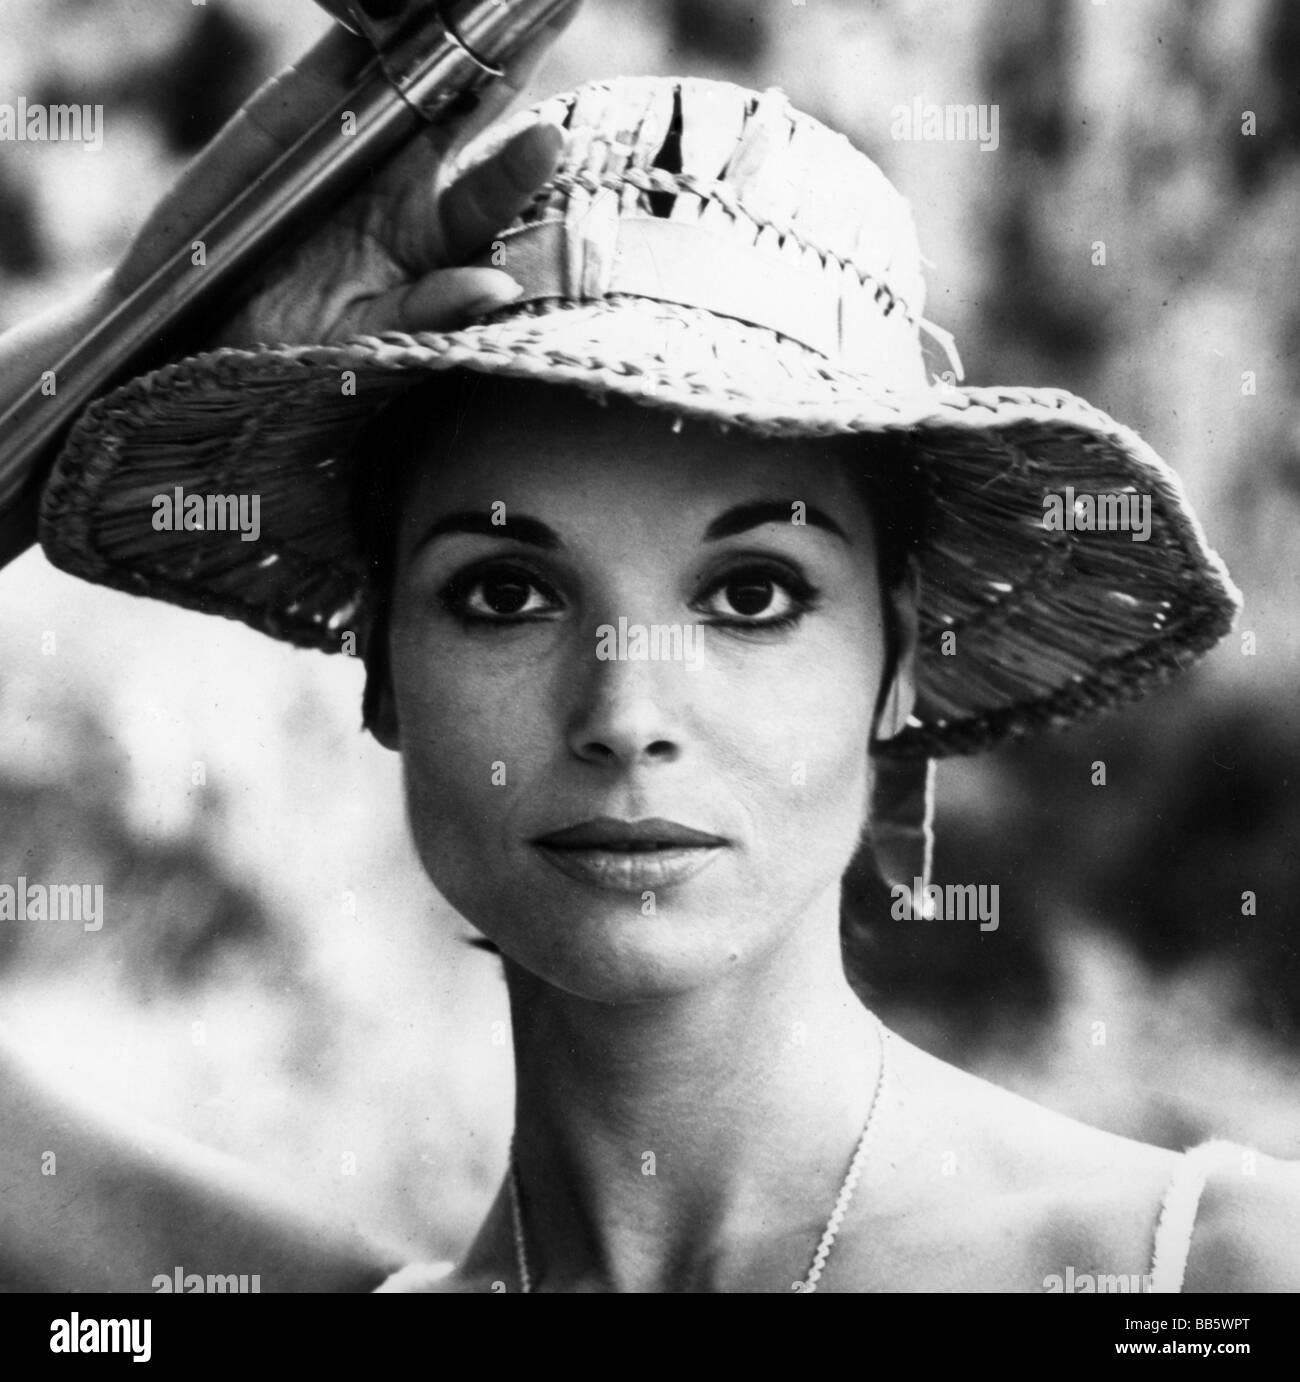 Martinelli, Elsa * 13.1.1932, Italian actress, portrait, 1960s, Additional-Rights-Clearances-NA - Stock Image